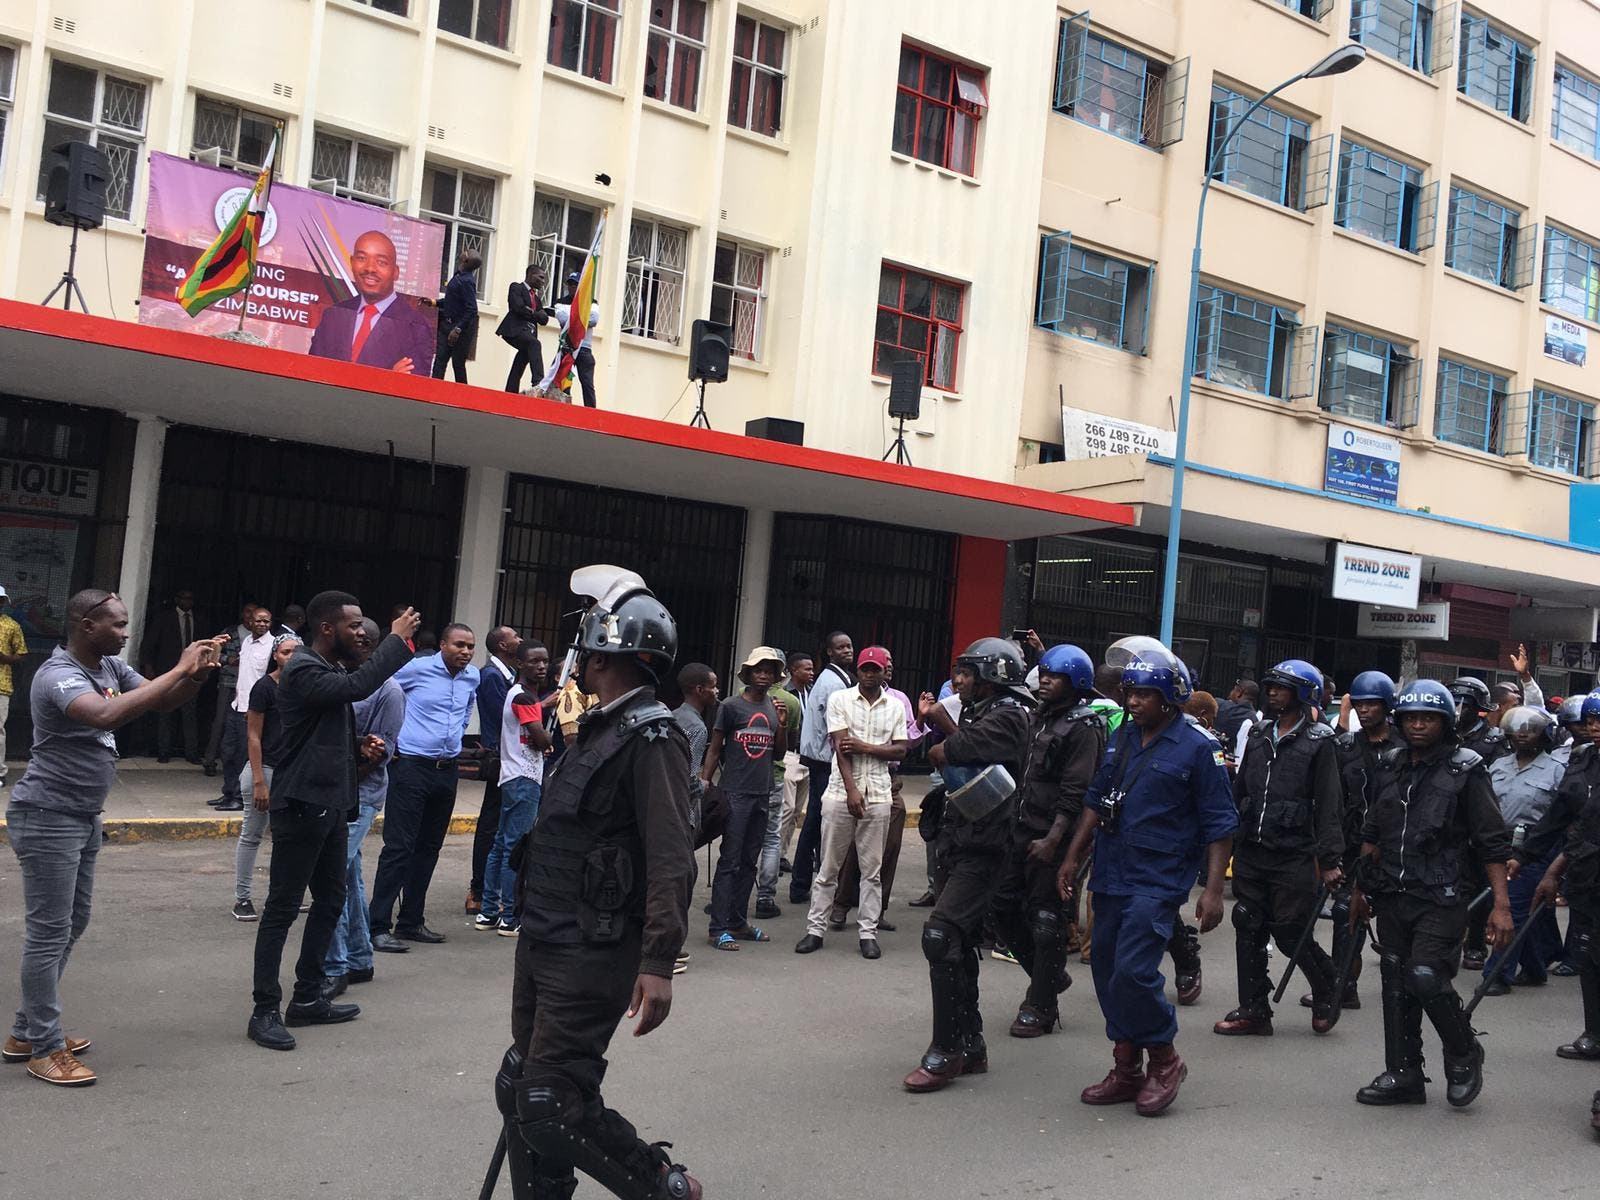 Below are scenes from the Morgan Richard Tsvangirai (MRT) House, formerly Harvest House, where MDC leader Nelson Chamisa is expected to deliver his Hope of the nation address (HONA). The Address is being held at the party headquarters after the police denied the opposition permission to hold the address at Africa Unity Square. There is heavy police presence as the police have surrounded the supporters who have gathered for the address.